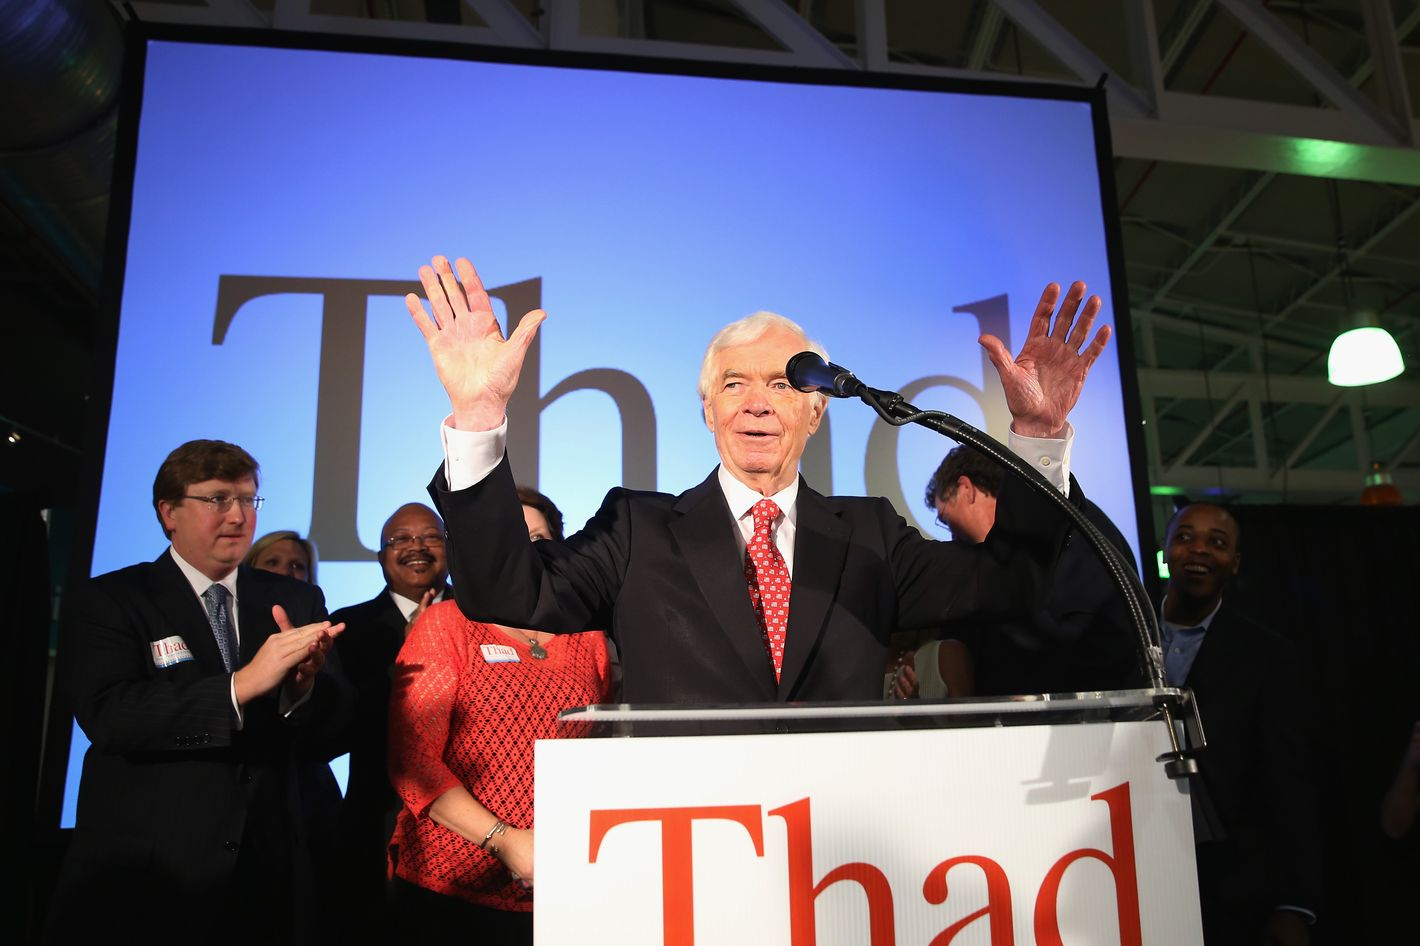 """JACKSON, MS - JUNE 24:  U.S. Sen. Thad Cochran (R-MS) speaks to supporters during his """"Victory Party"""" after holding on to his seat after a narrow victory over Chris McDaniel at the Mississippi Children's Museum on June 24, 2014 in Jackson, Mississippi. Cochran, a 36-year Senate incumbent, defeated Tea Party-backed Republican candidate Mississippi State Sen. Chris McDaniel in a tight runoff race.  (Photo by Justin Sullivan/Getty Images)"""